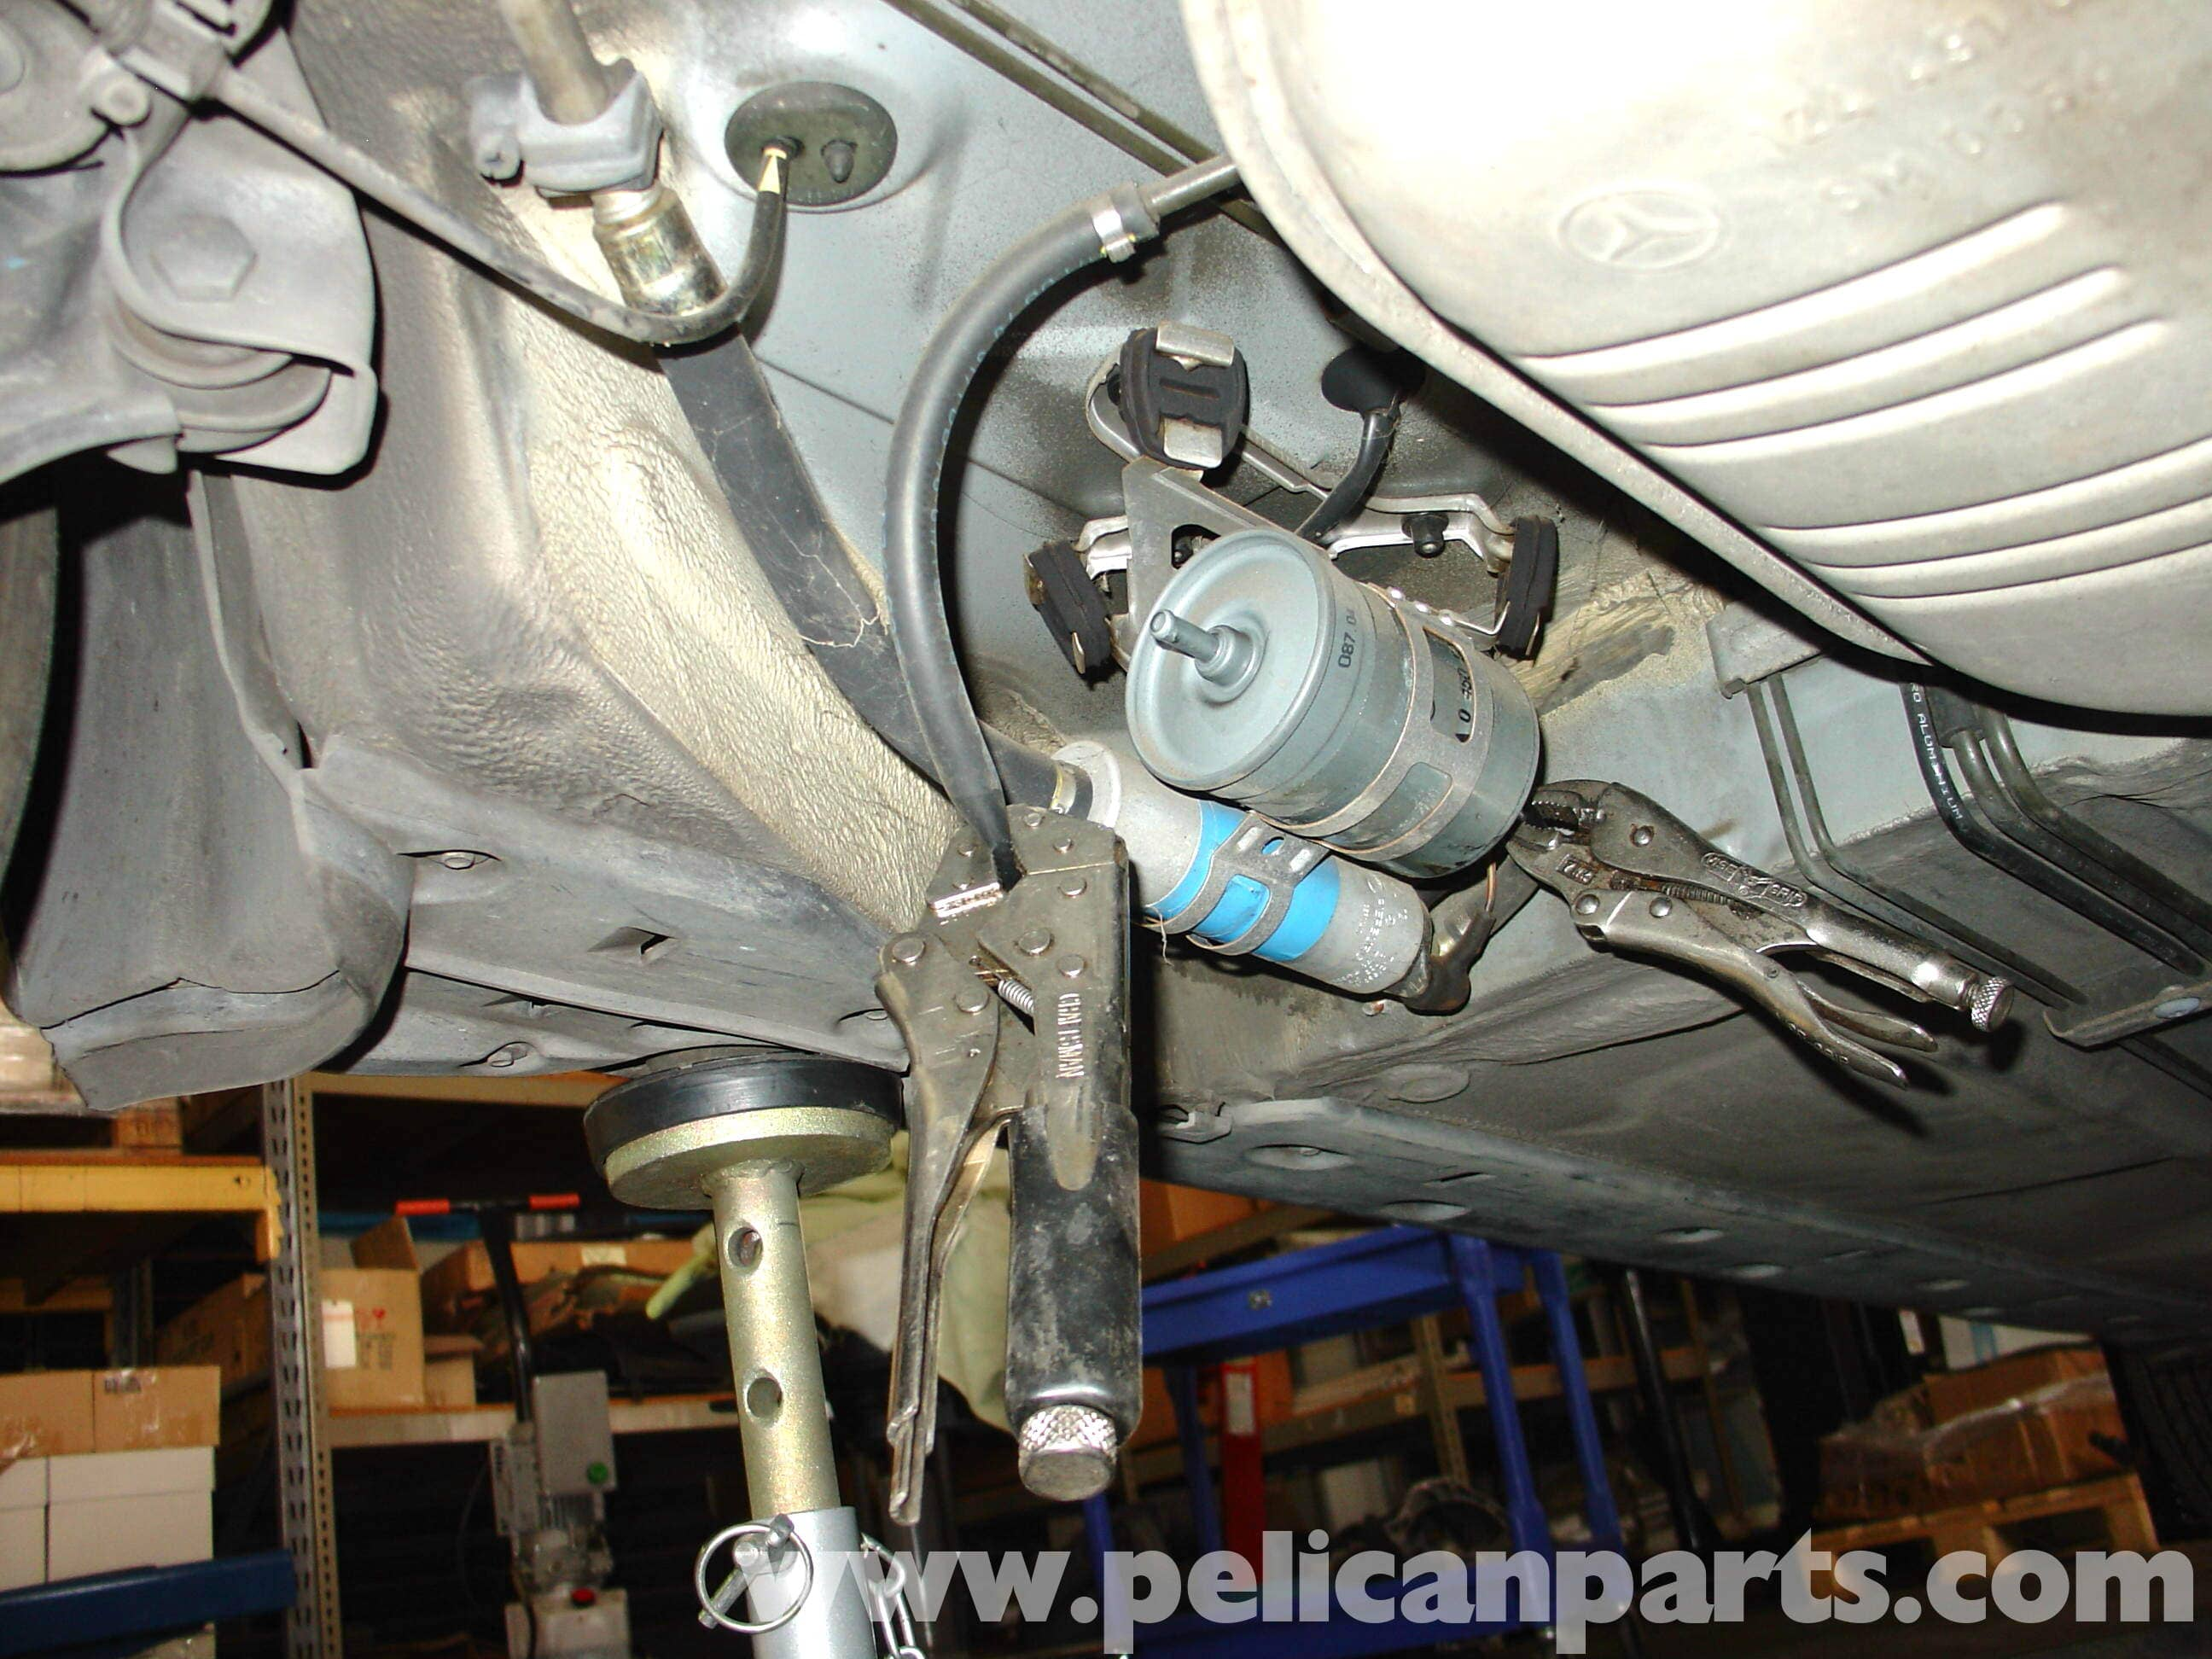 2001 Chevrolet Silverado 1500 Fuel Pump Location as well Help Cut Fuel Line Replacing Fuel Filter 91472 together with Watch as well P0171 in addition Topic13122 15. on chevy blazer fuel filter location